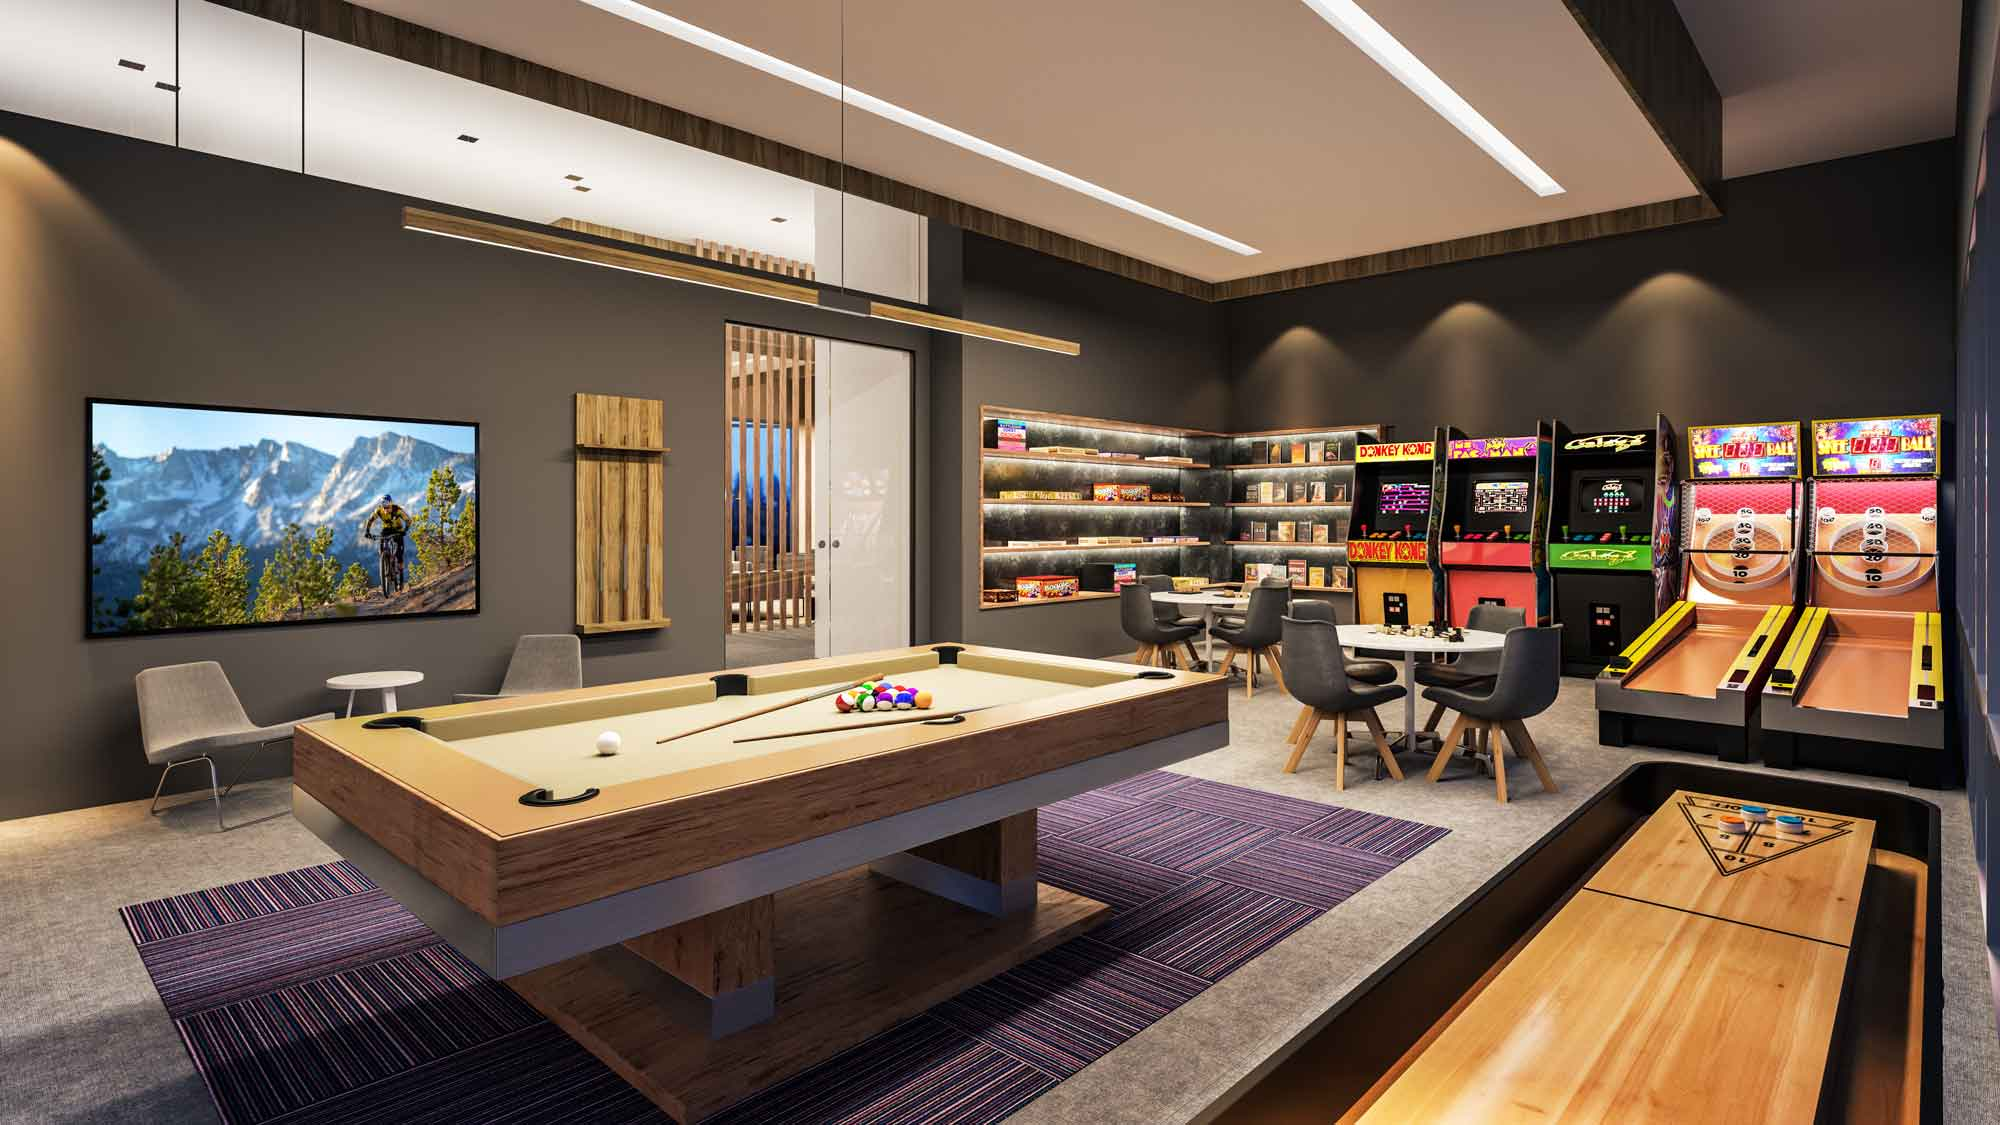 YotelPAD Mammoth Lakes Game Room Rendering